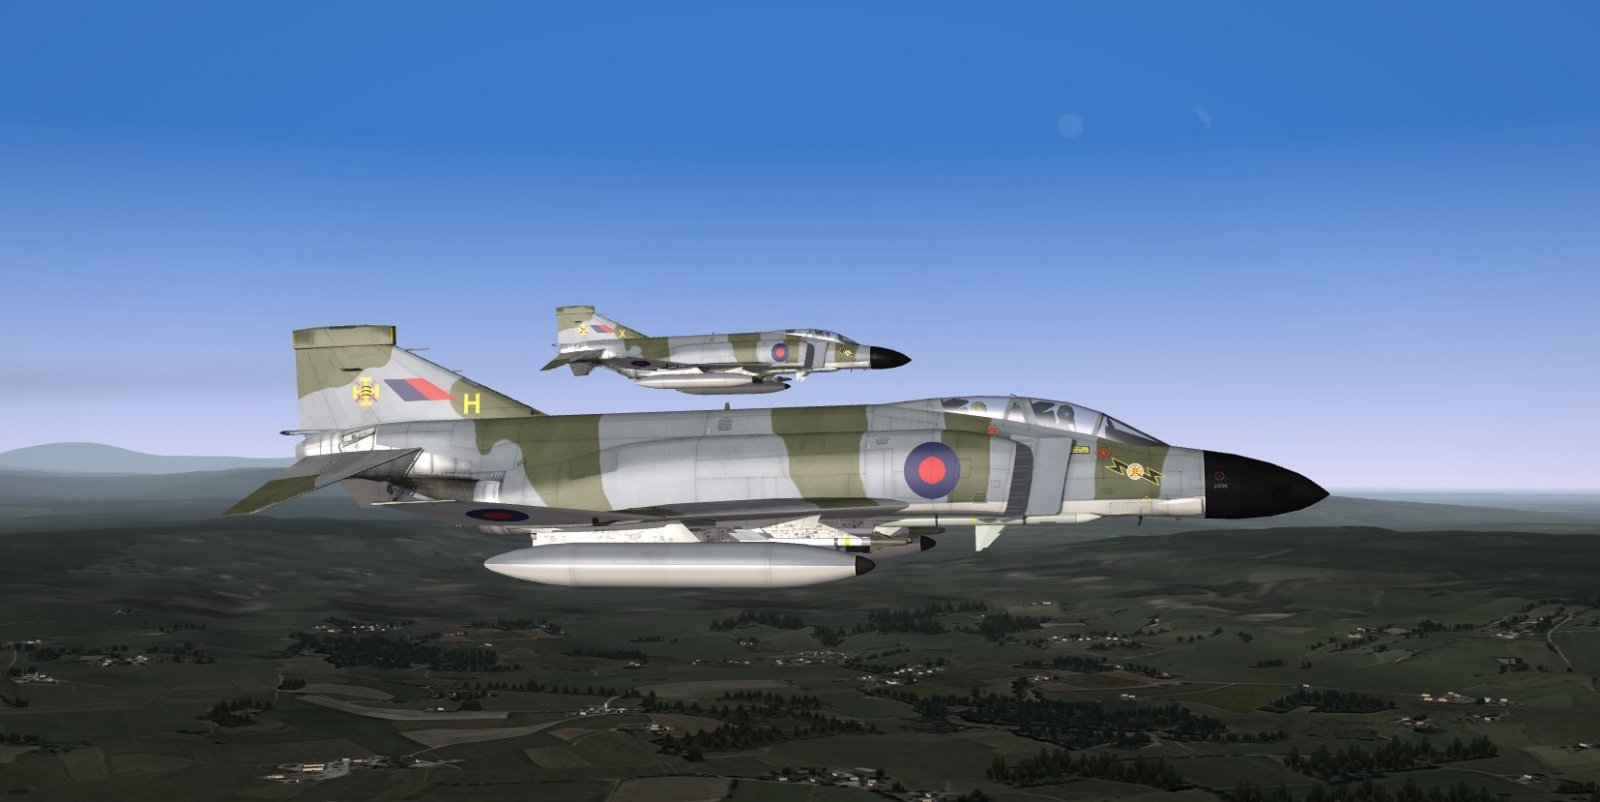 Royal Air Force Phantom FGR2 (F4M) late 1970s to early 1980s